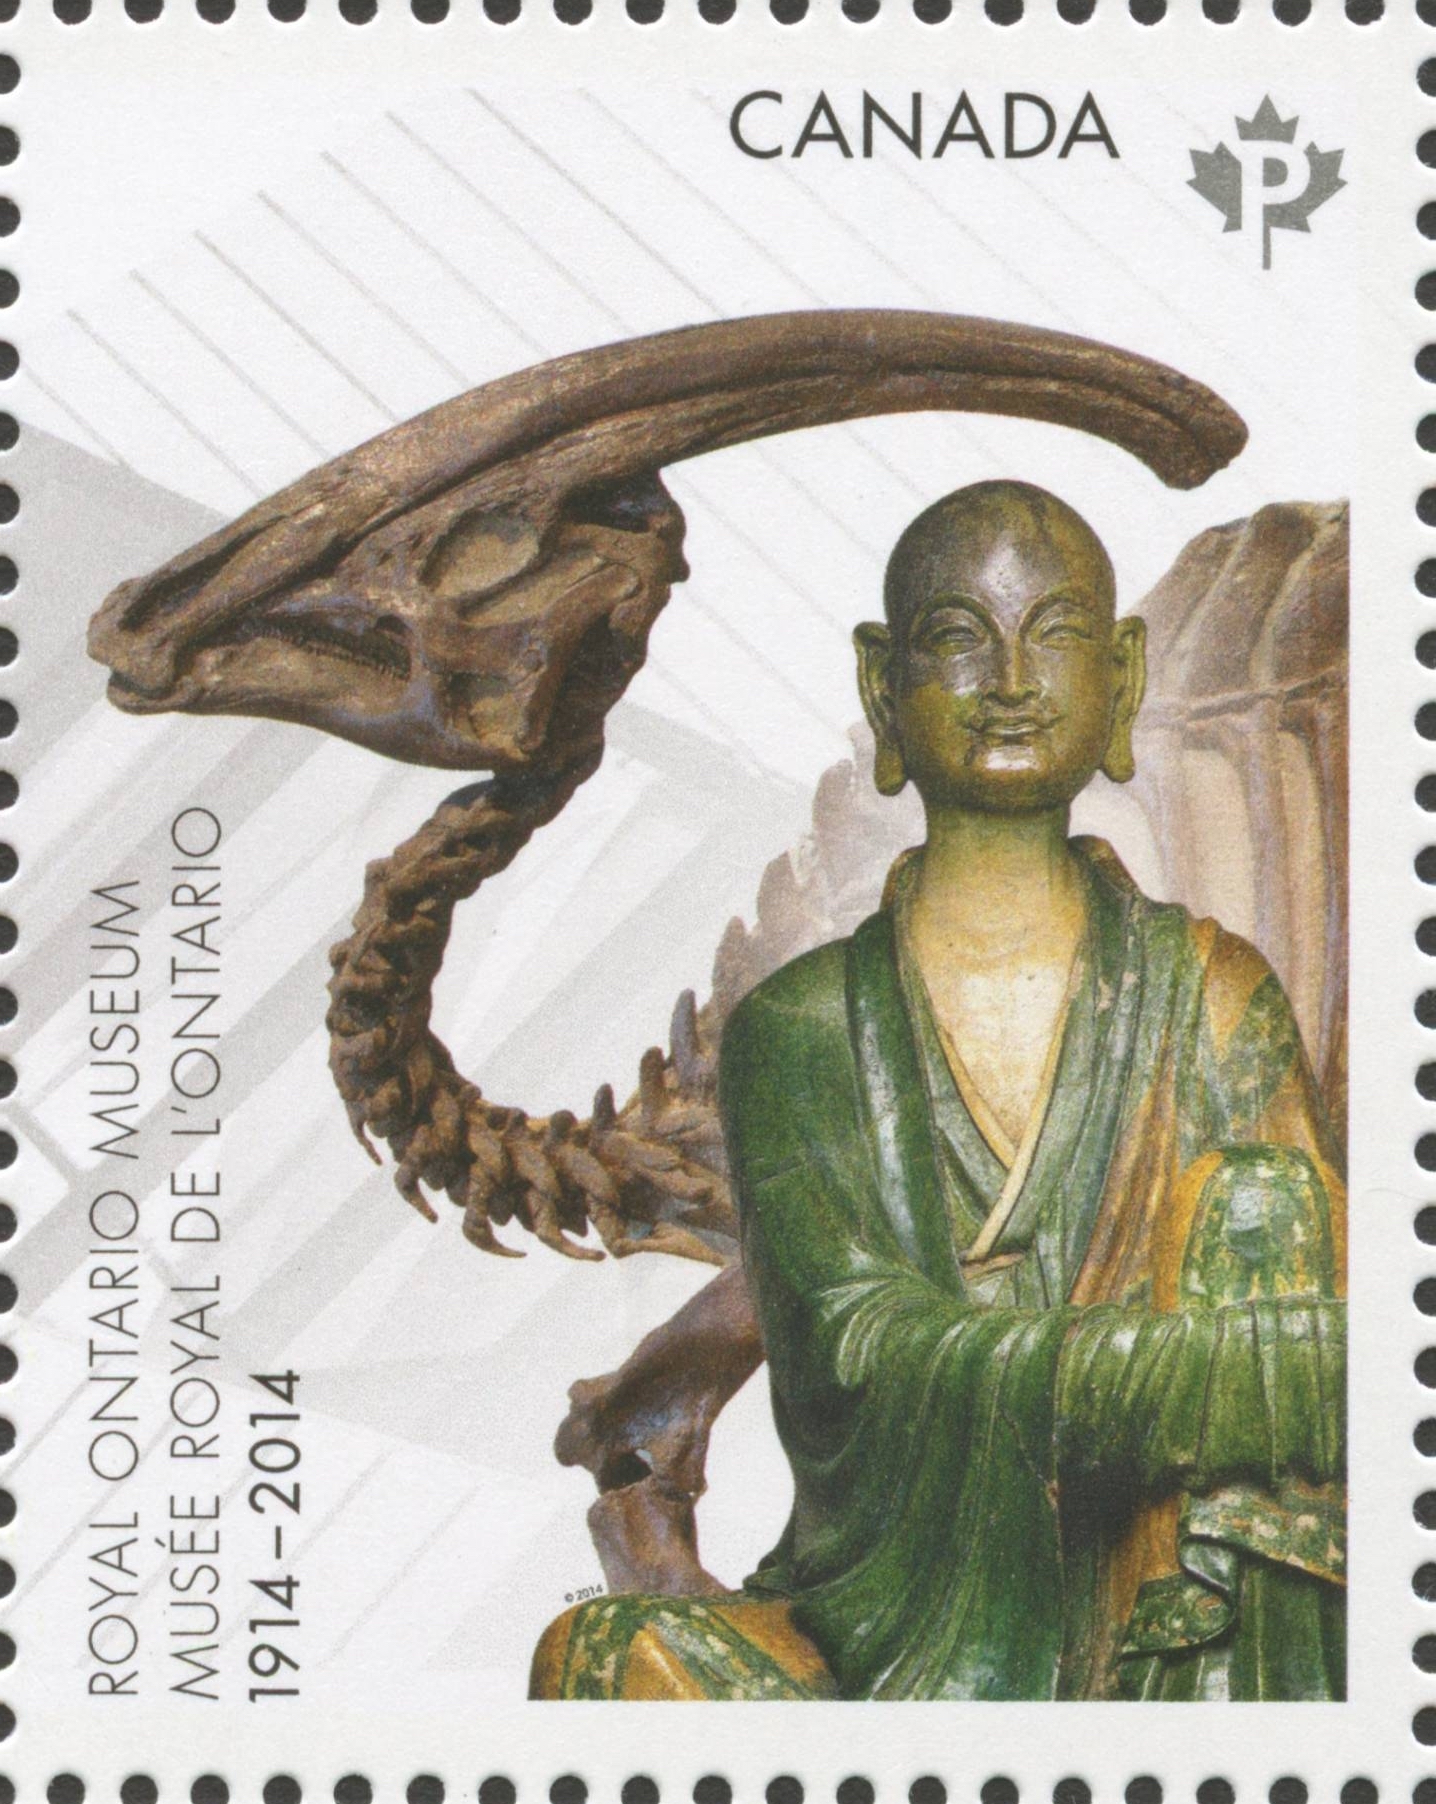 Royal Ontario Museum - Hadrasaur Skeleton and the Luohan Chinese Sculpture Canada Postage Stamp | Royal Ontario Museum (ROM)